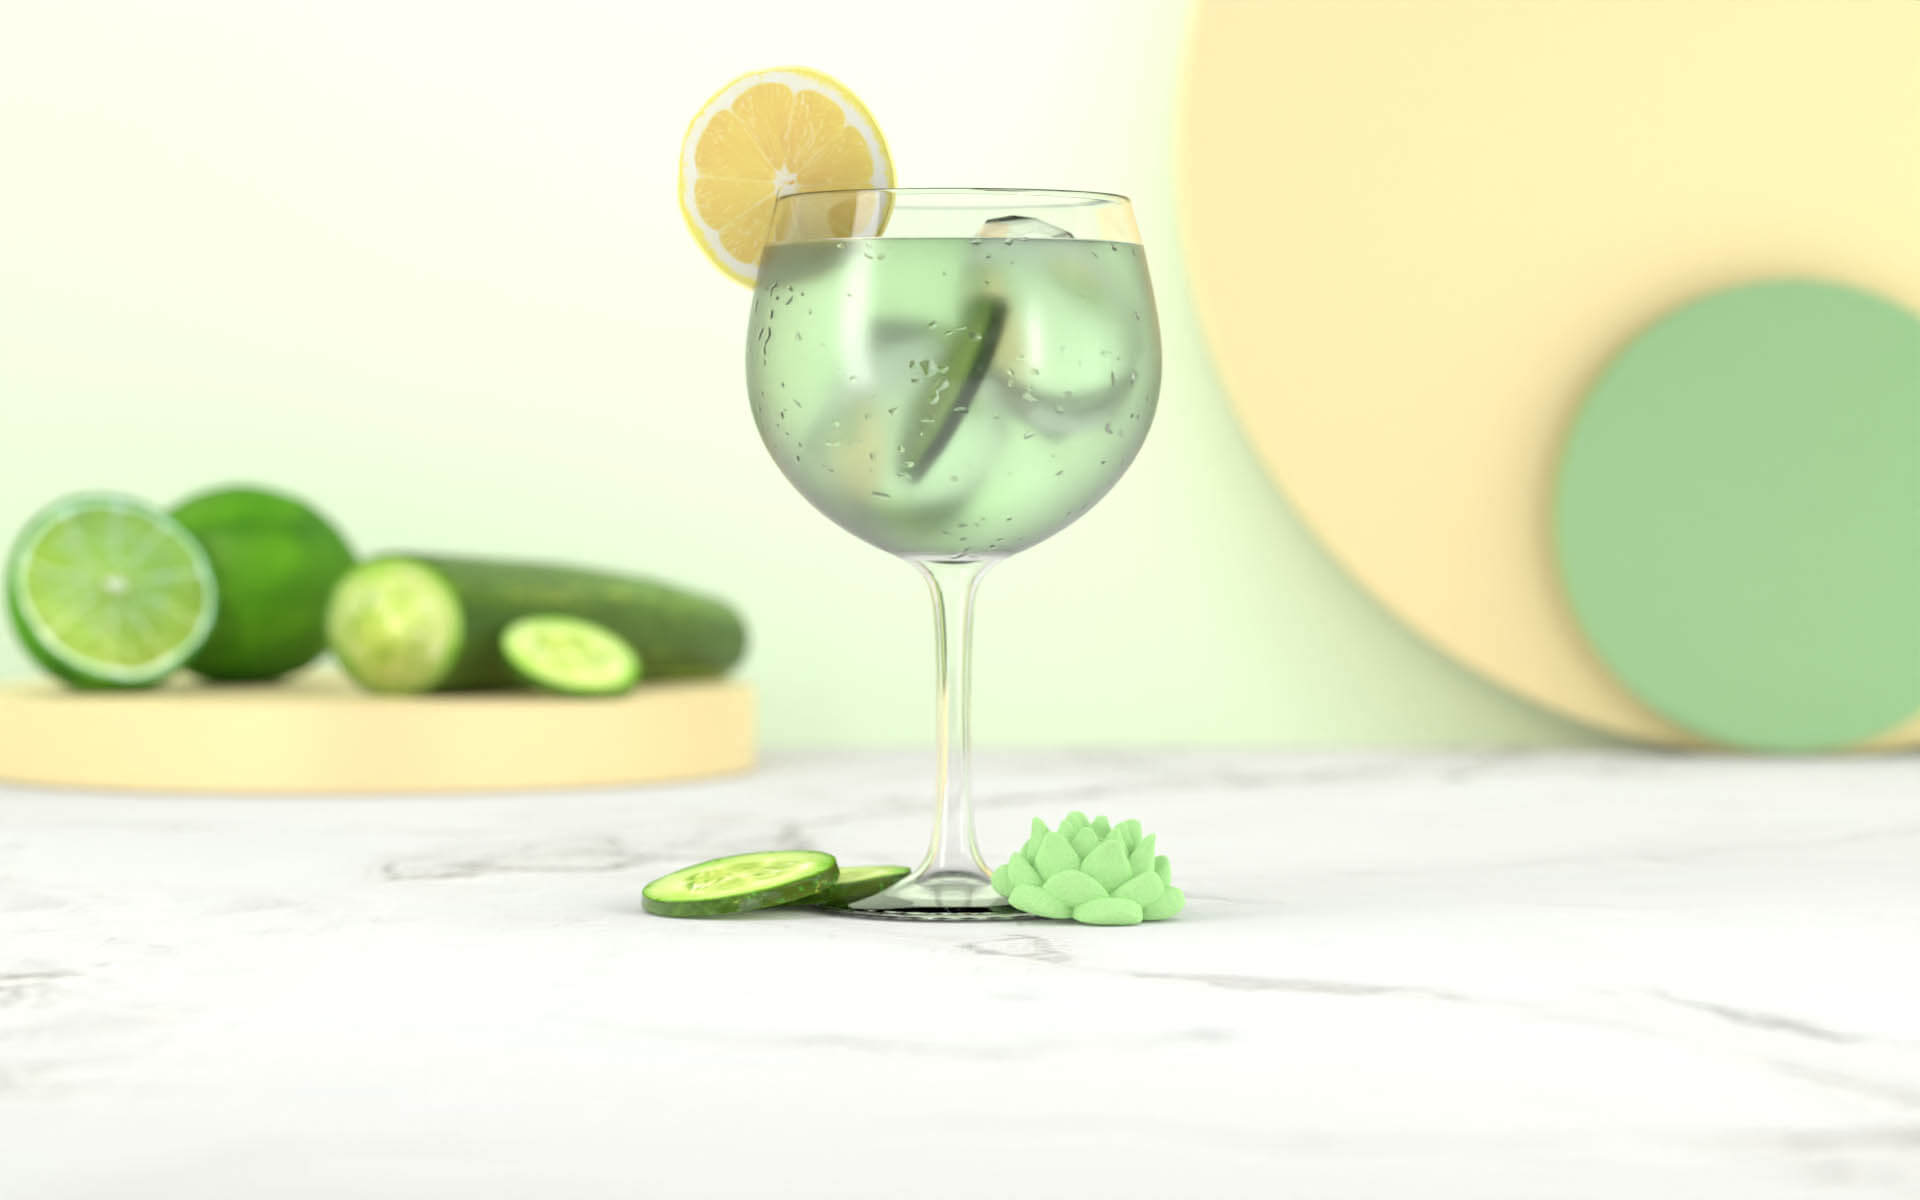 poseidn-3ddrink-3dfood-summercollection-cucumber-2